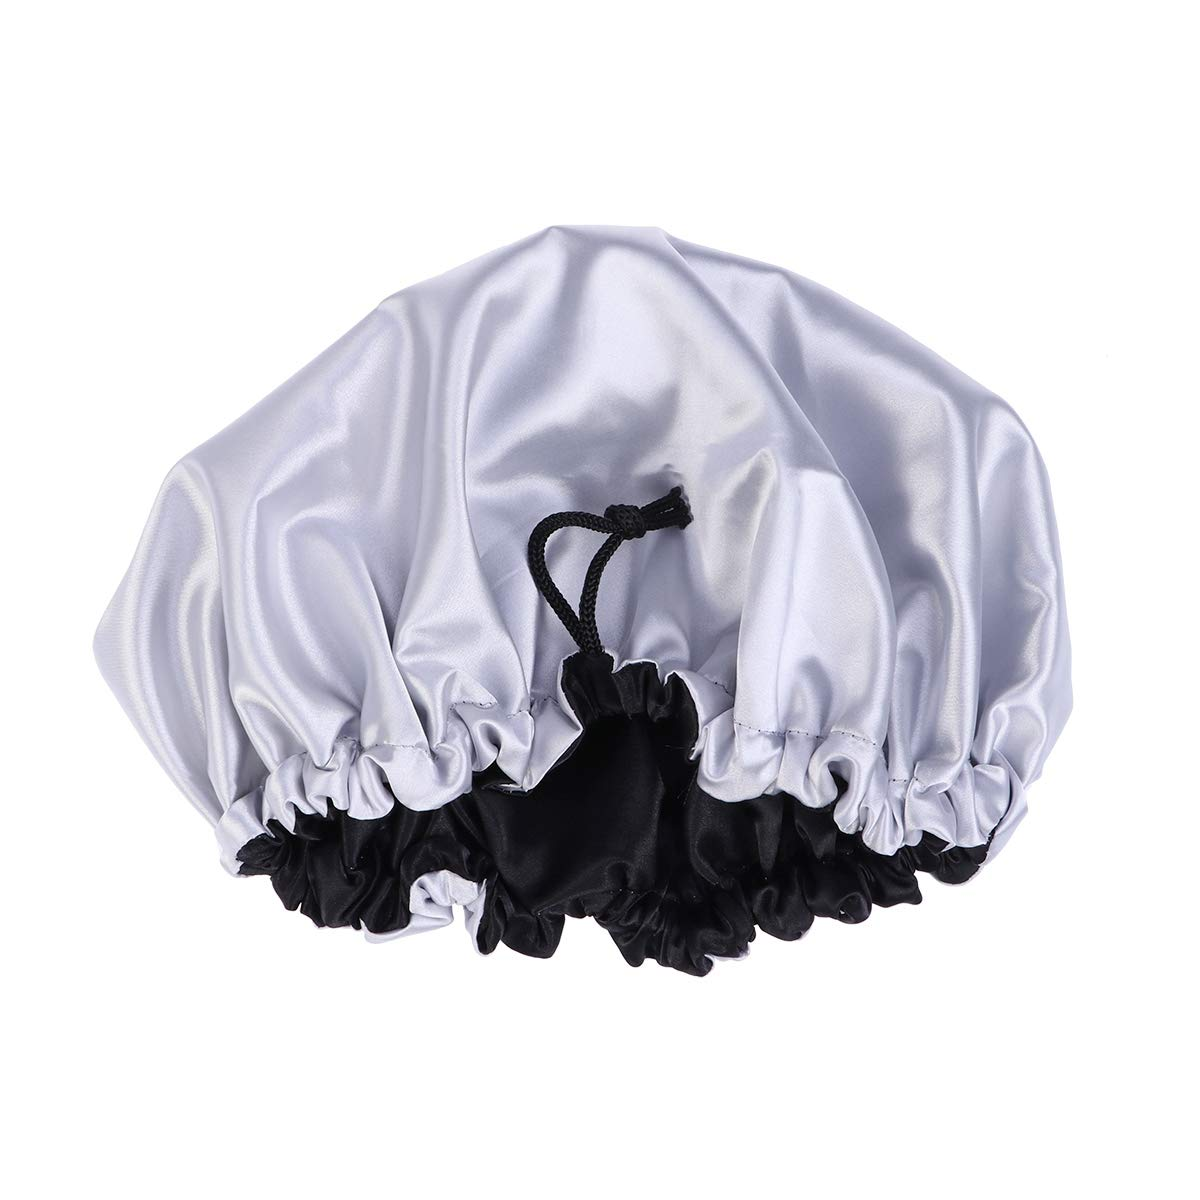 Healifty Fashion Chefs Hat Kitchen Professional Catering Various Skull Cap Turban Black